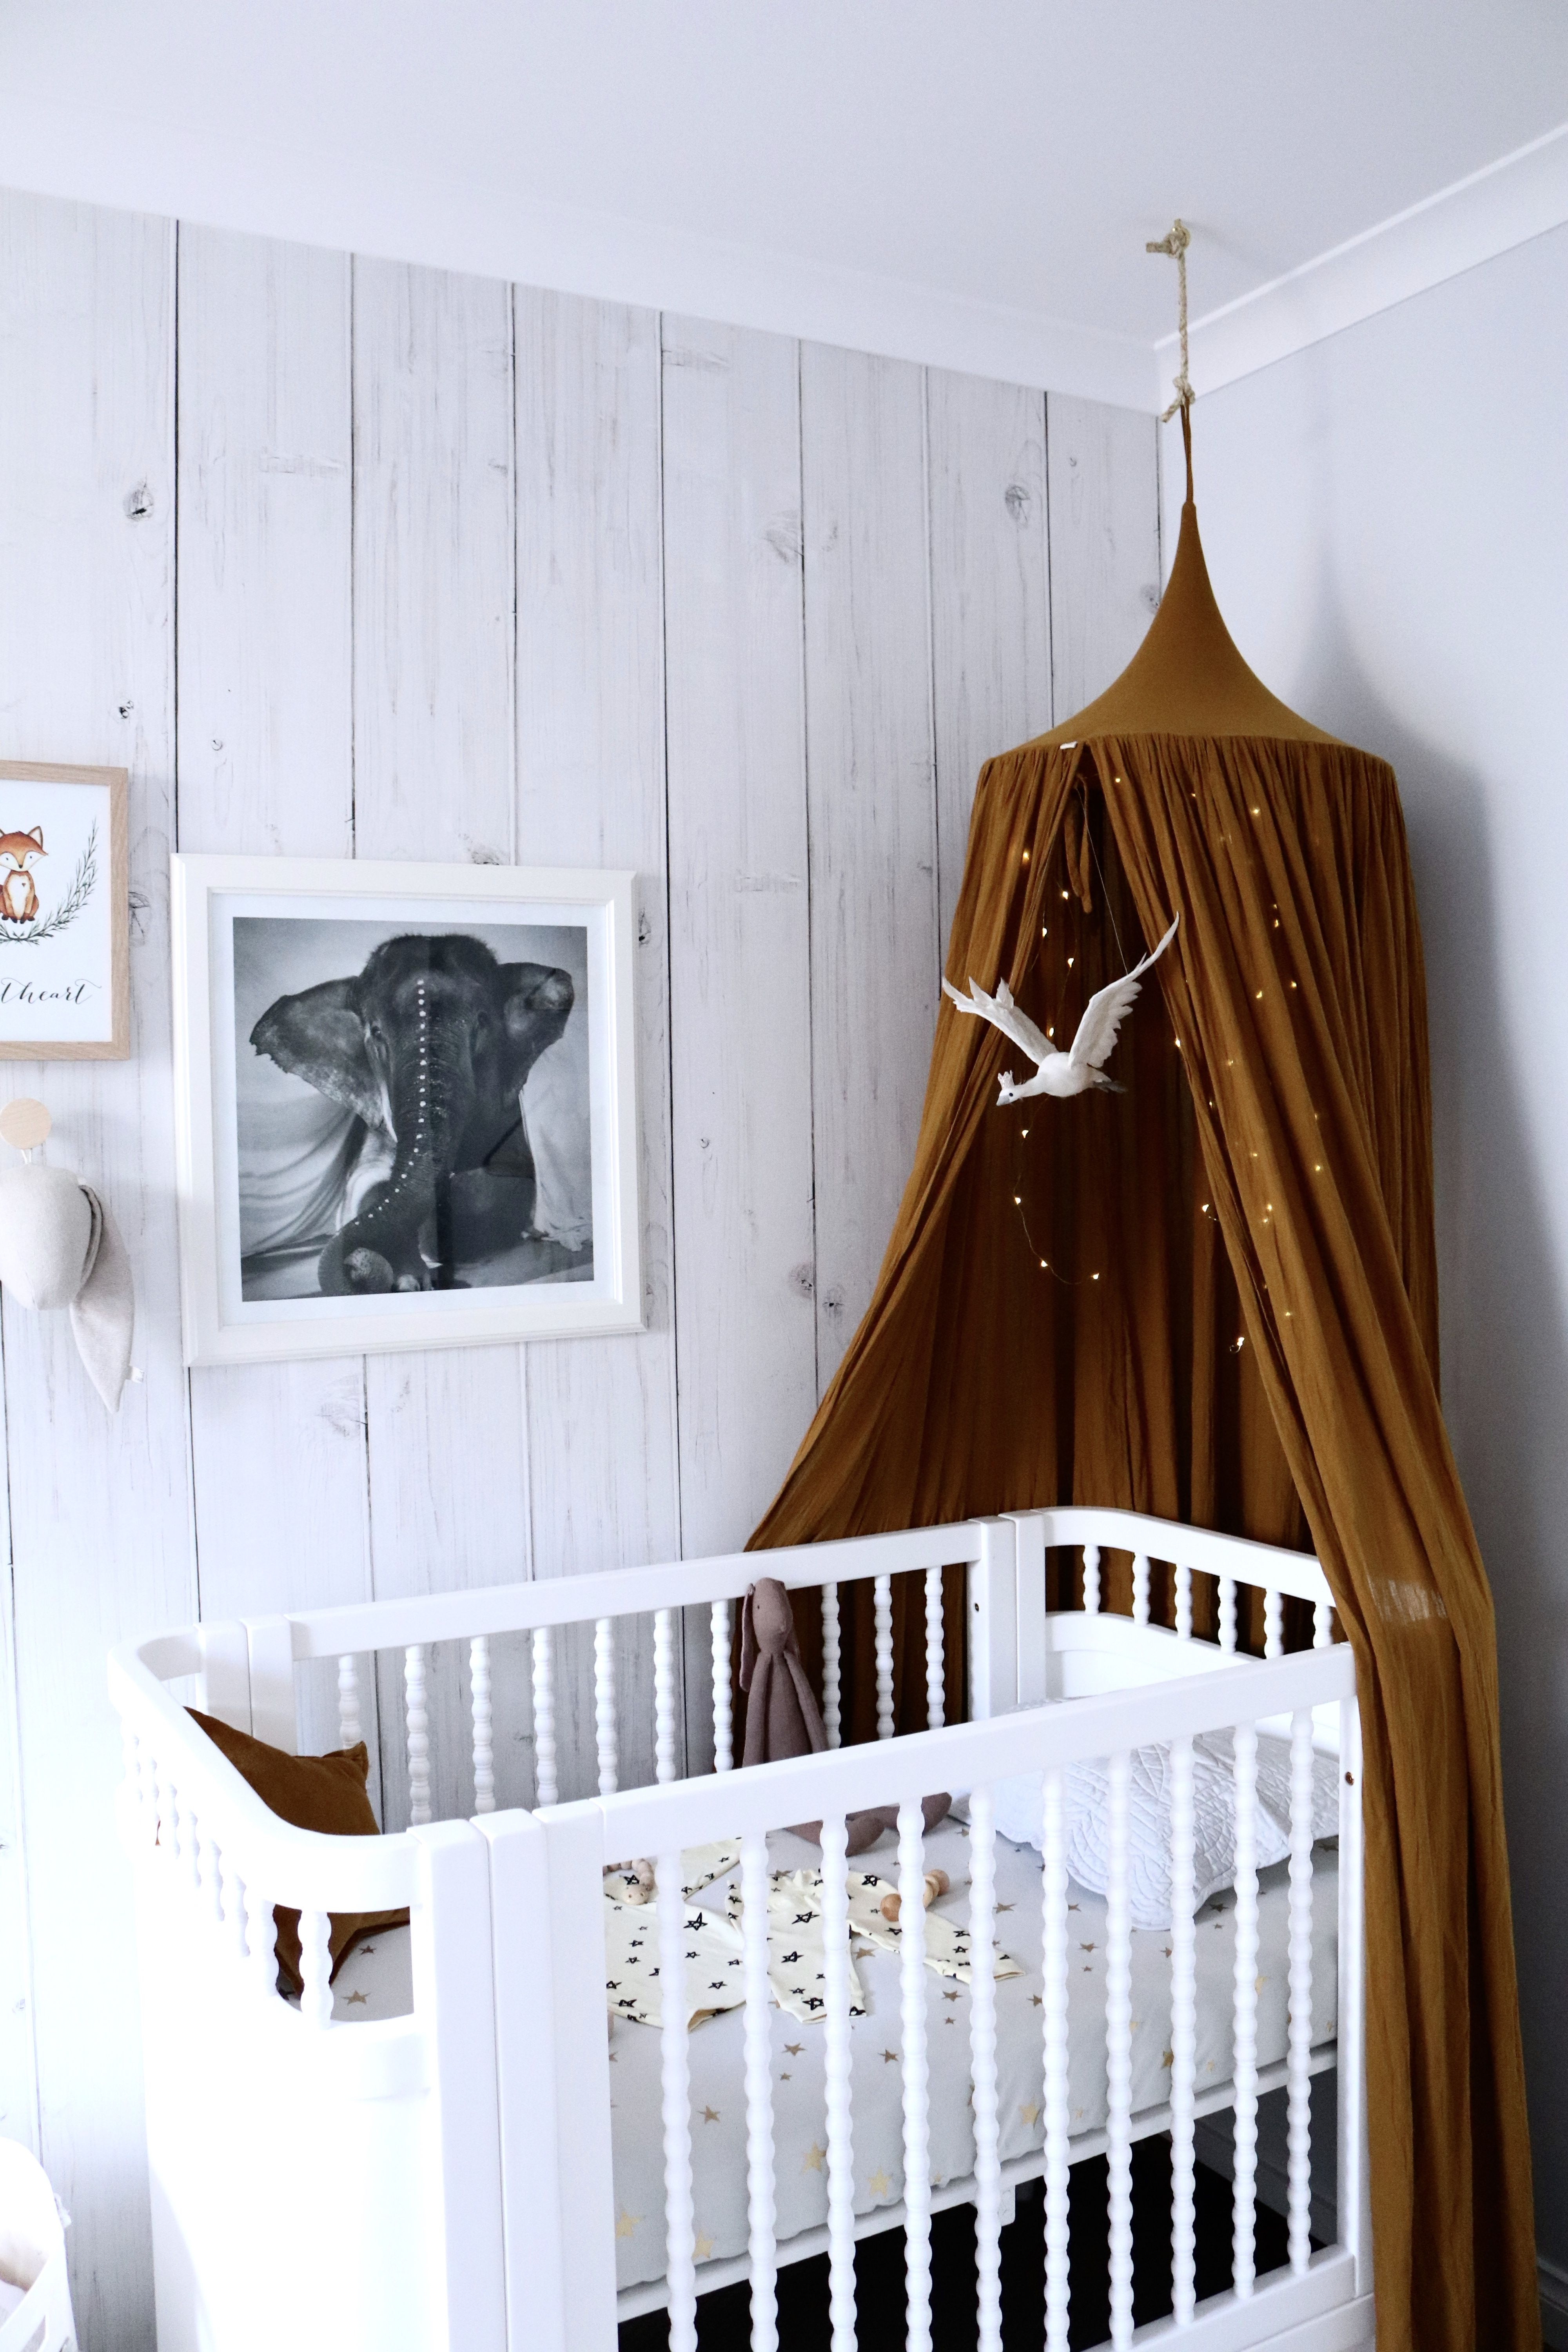 Rocking crib for sale doncaster -  3in1cot Is One Of Our Best Selling Cot Beds It Is Designed For Limited Nursery Spaces Quality And Beautiful Baby Cot With Loads Of Storage Se